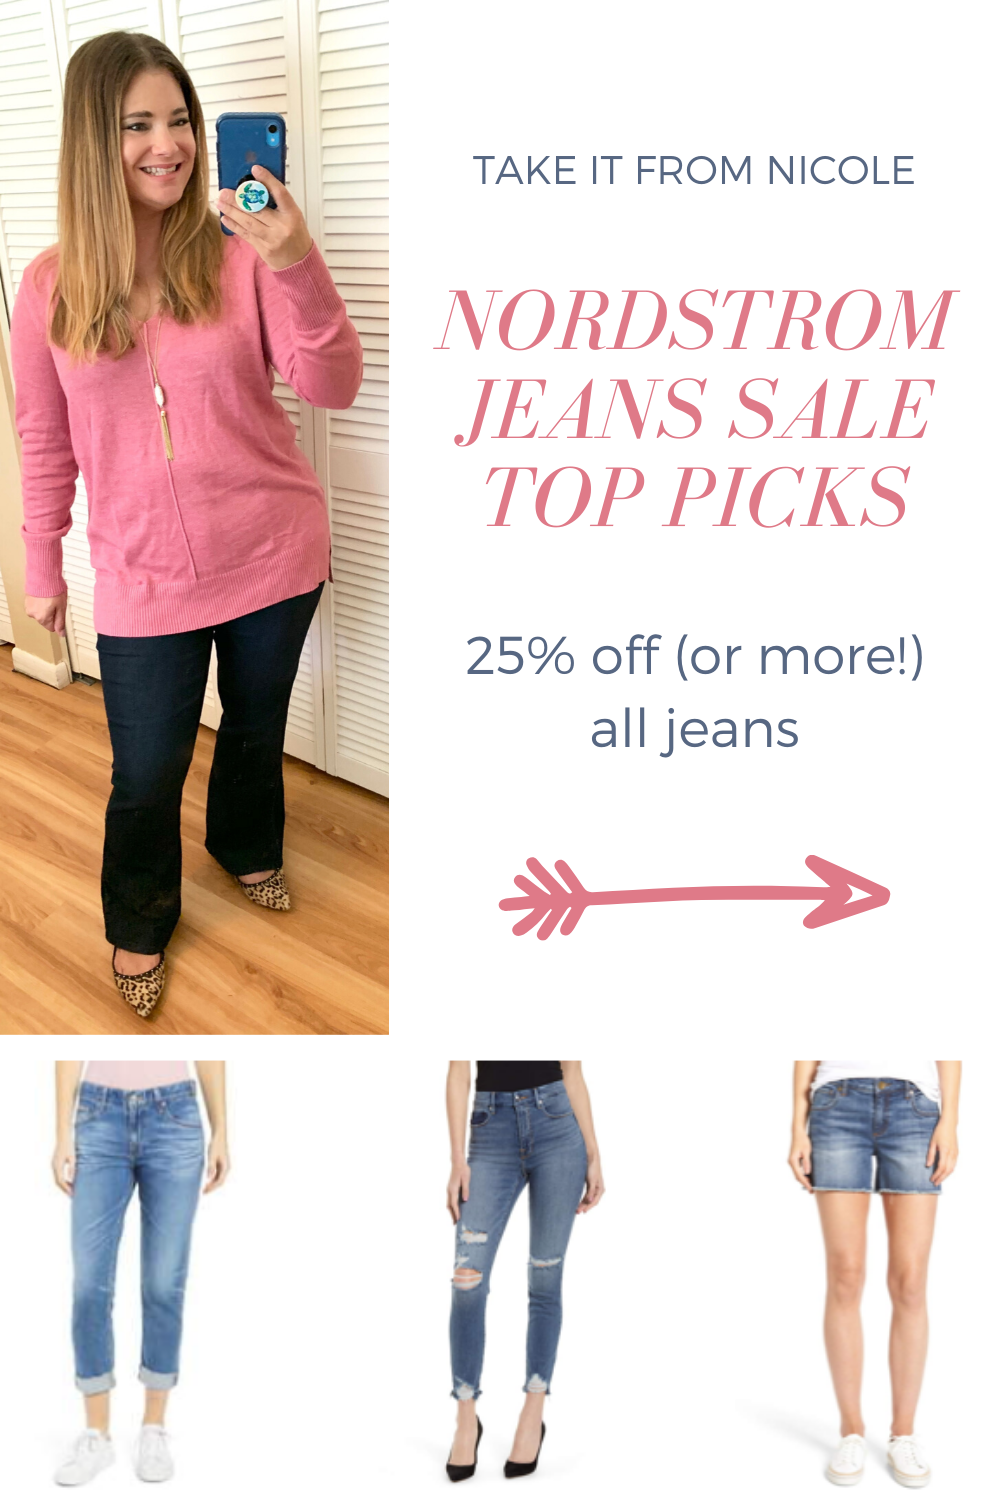 Nordstrom is having an amazing sale on denim! 25% off all jeans for women, men, and kids. I'm also seeing a lot of price matches for even bigger discounts.